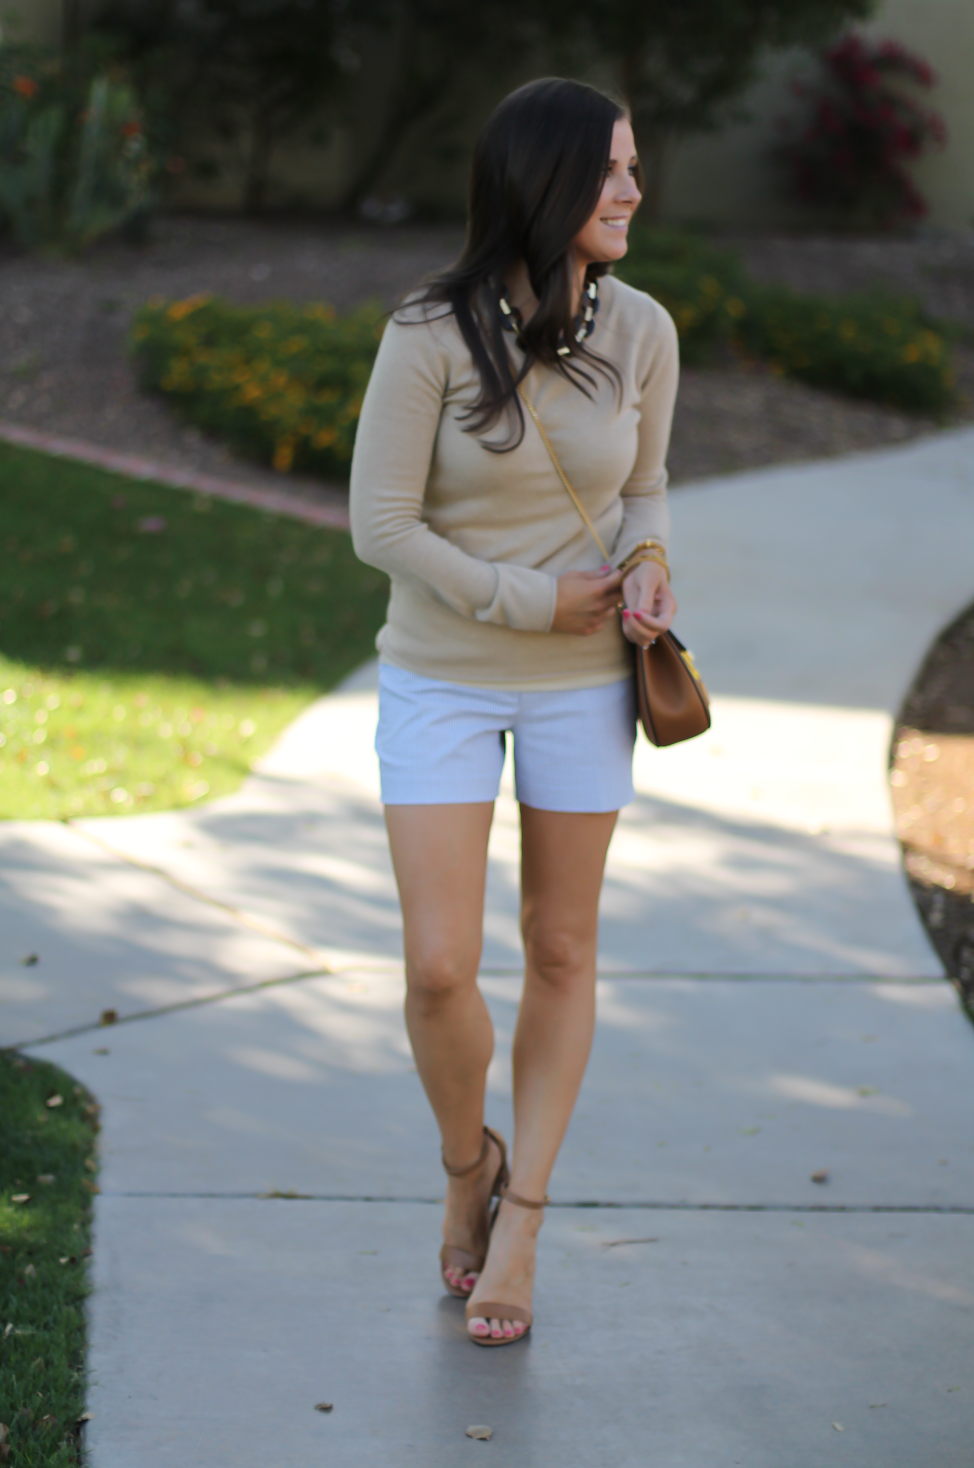 Seersucker Shorts, Tan Cashmere Sweater, Tan Leather Ankle Strap Heels, Tan Leather Chain Strap Bag, Ann Taylor, J.Crew, Steve Madden, Chloe  3